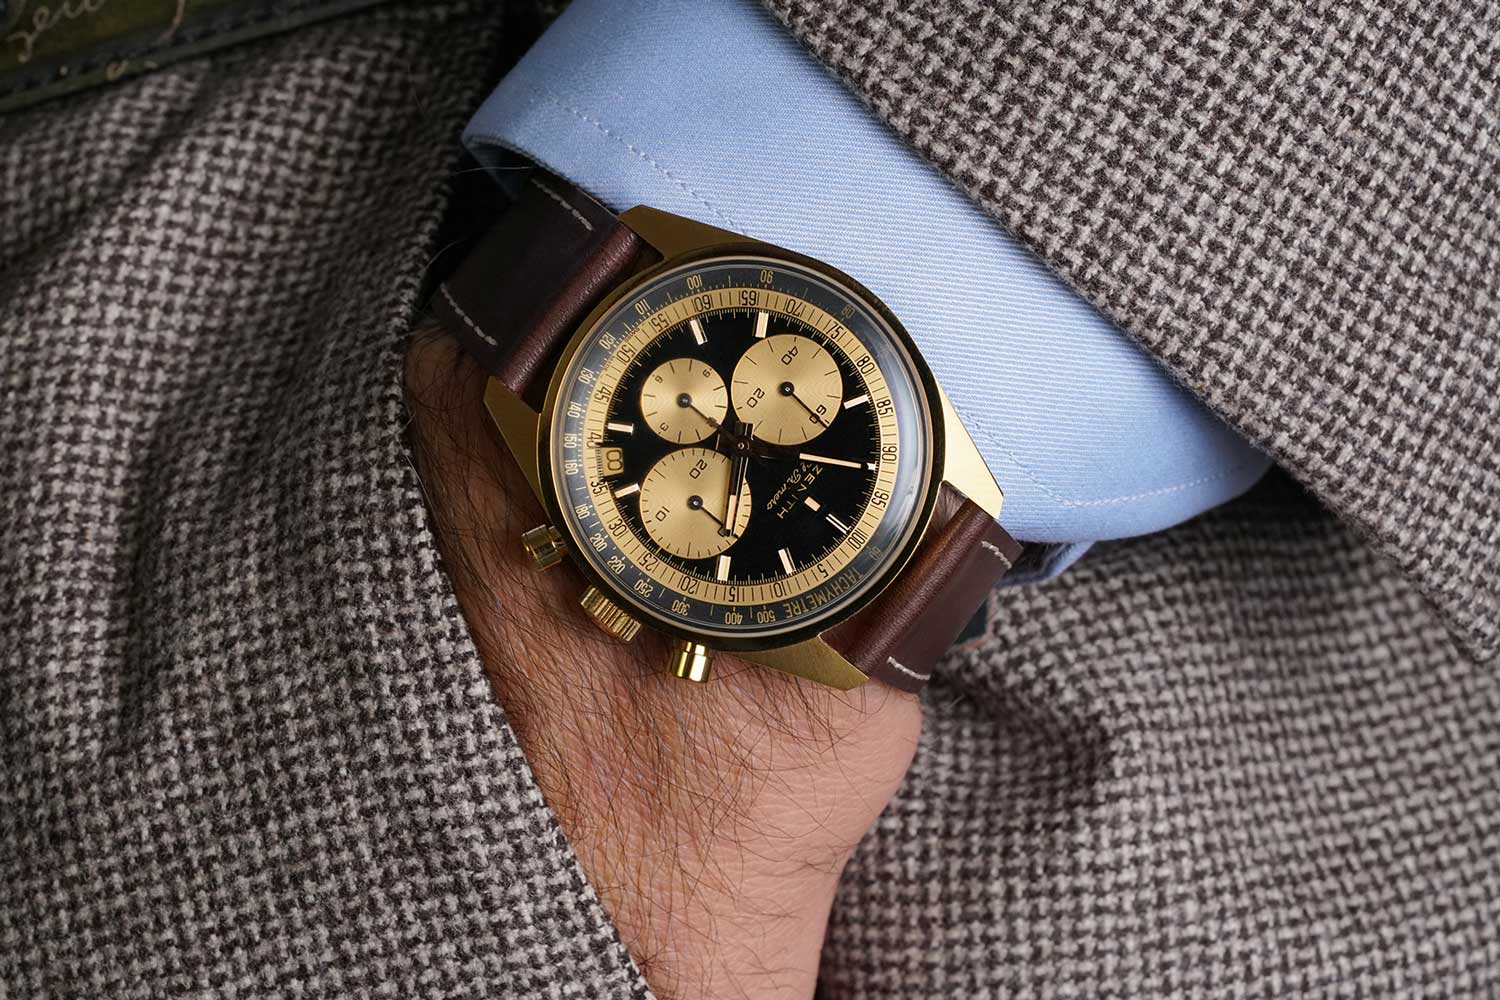 El Primero A386 Revival – Yellow Gold (Image: Phillips Watches)